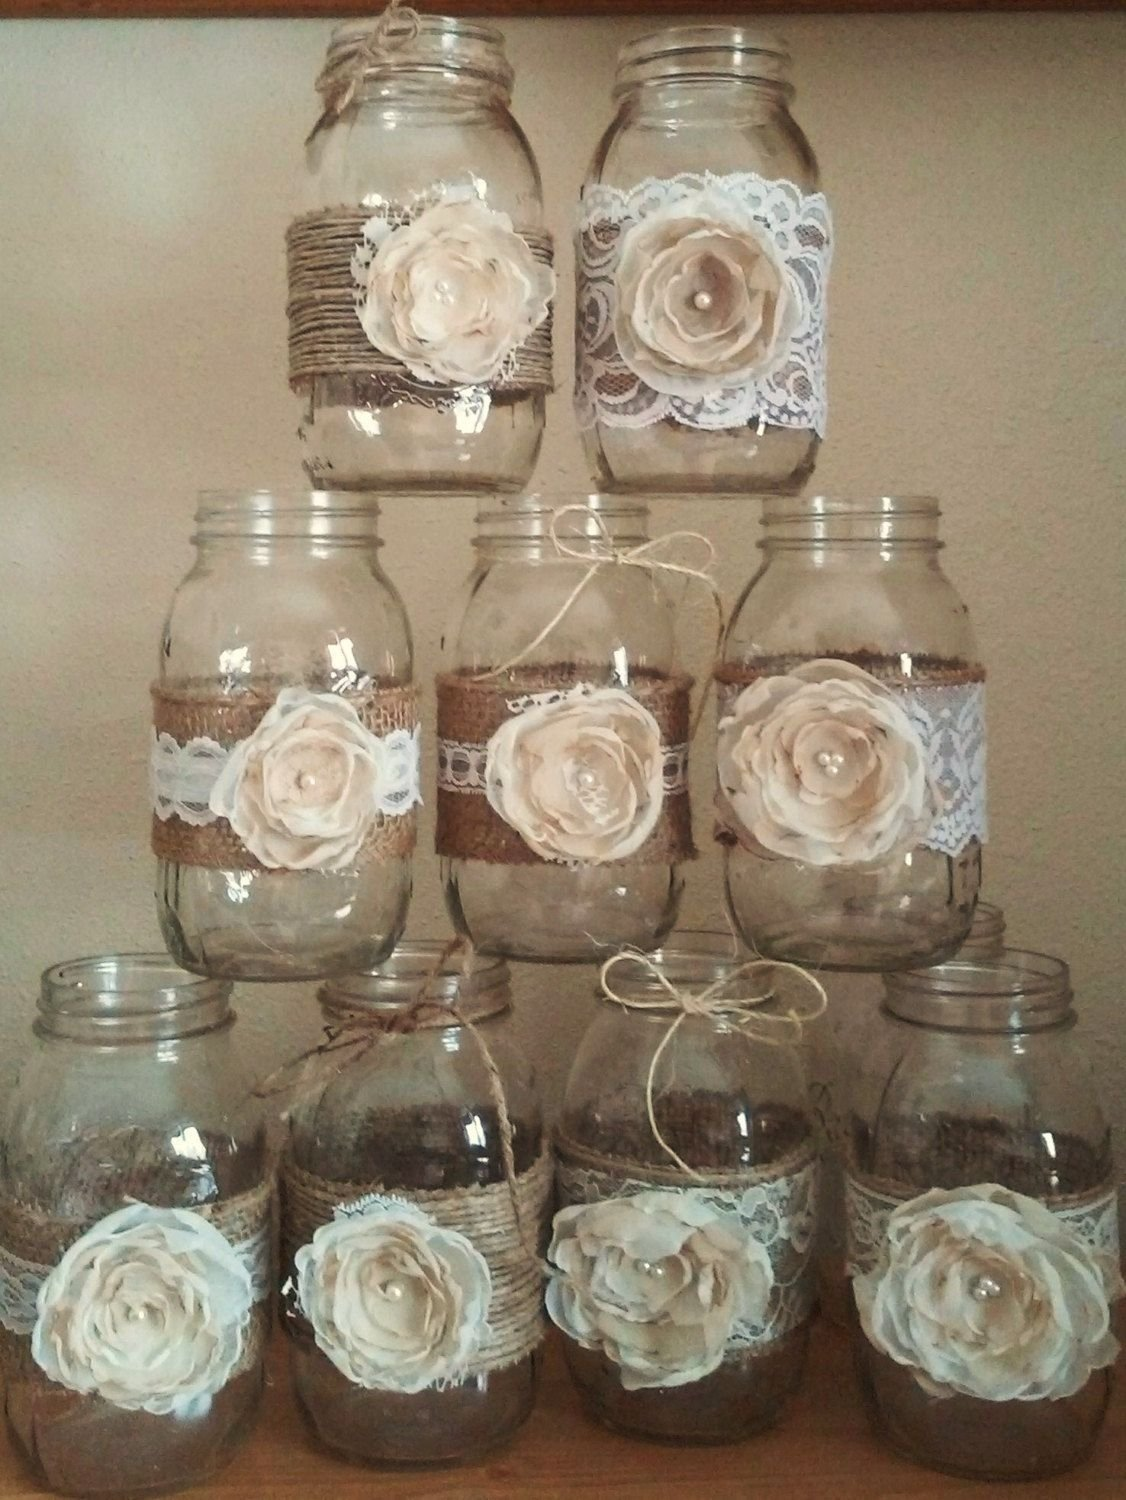 10 Lovable Mason Jar Ideas For Weddings 10 shabby chic mason jar decorations rusticrusticwithelegance 2020